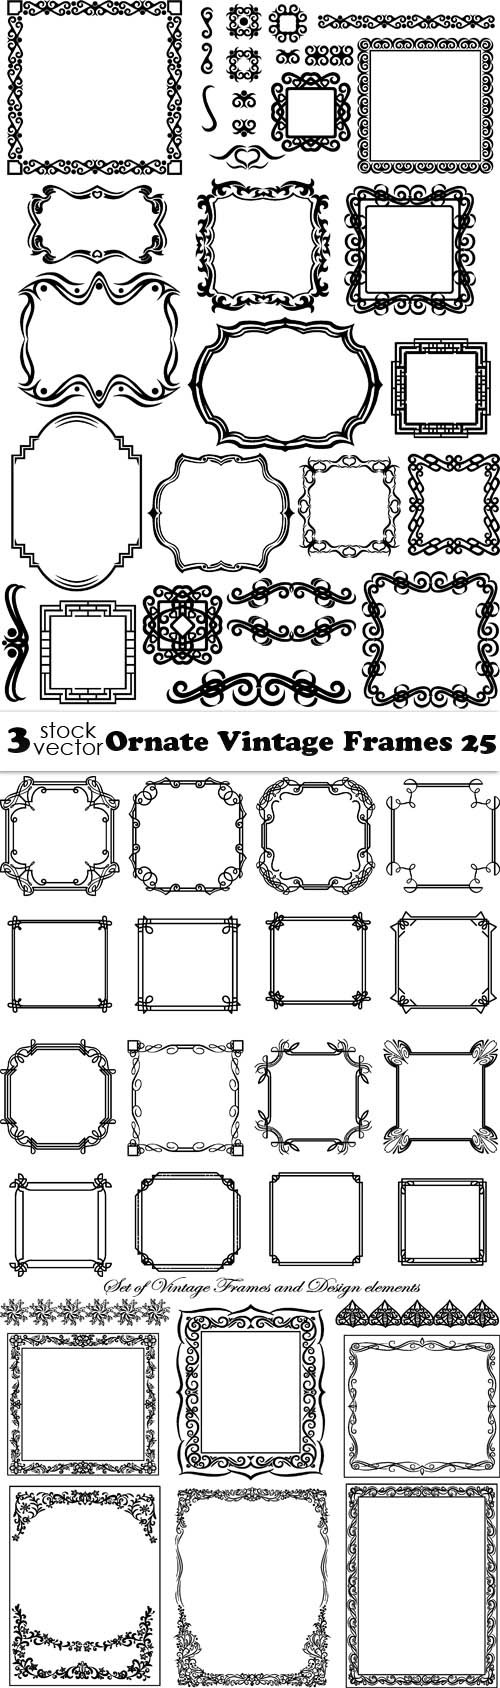 Vectors - Ornate Vintage Frames 25